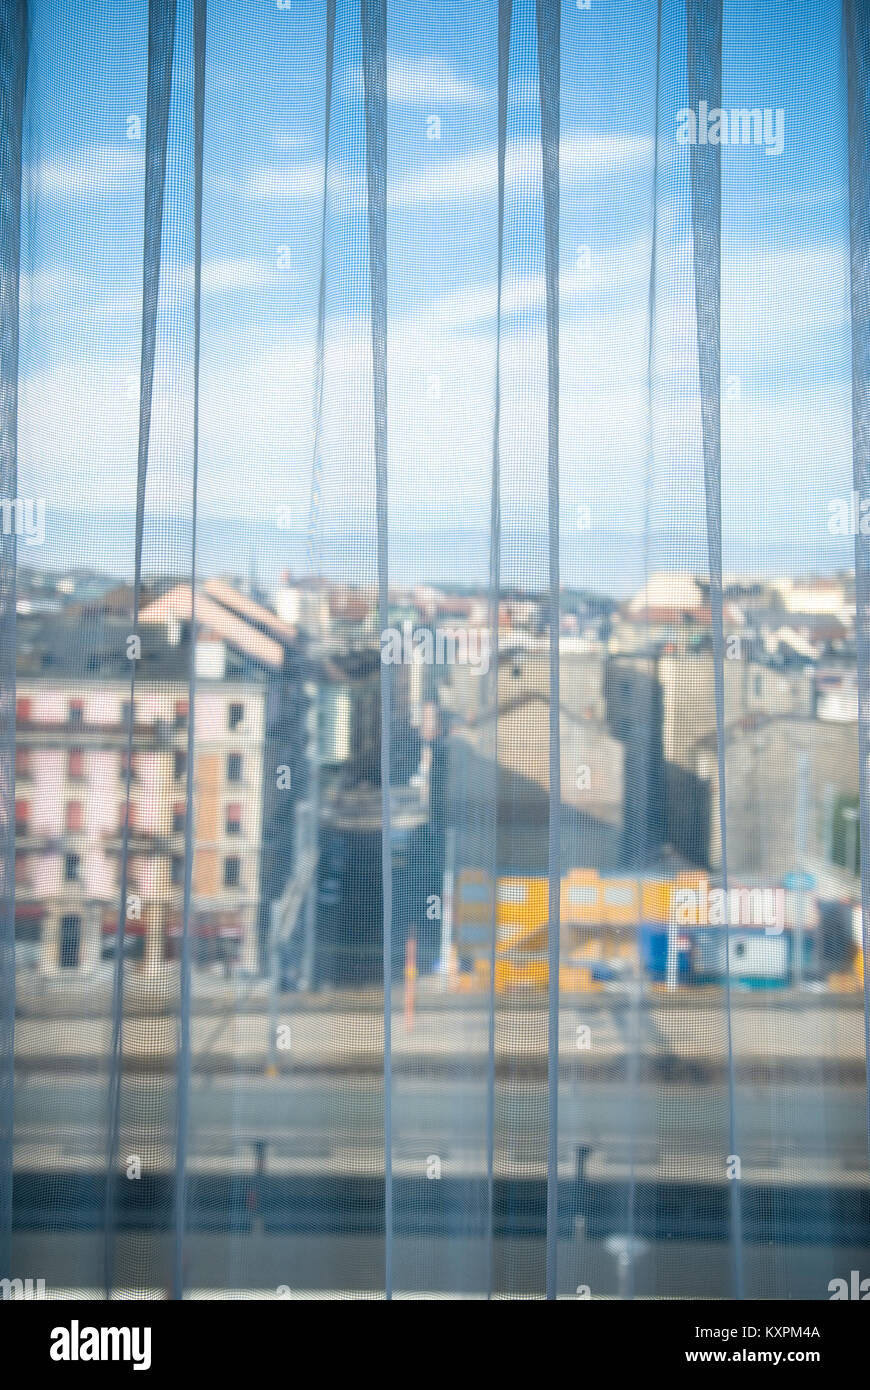 a shot through a window with a net curtain looking over part of Geneva city - Stock Image